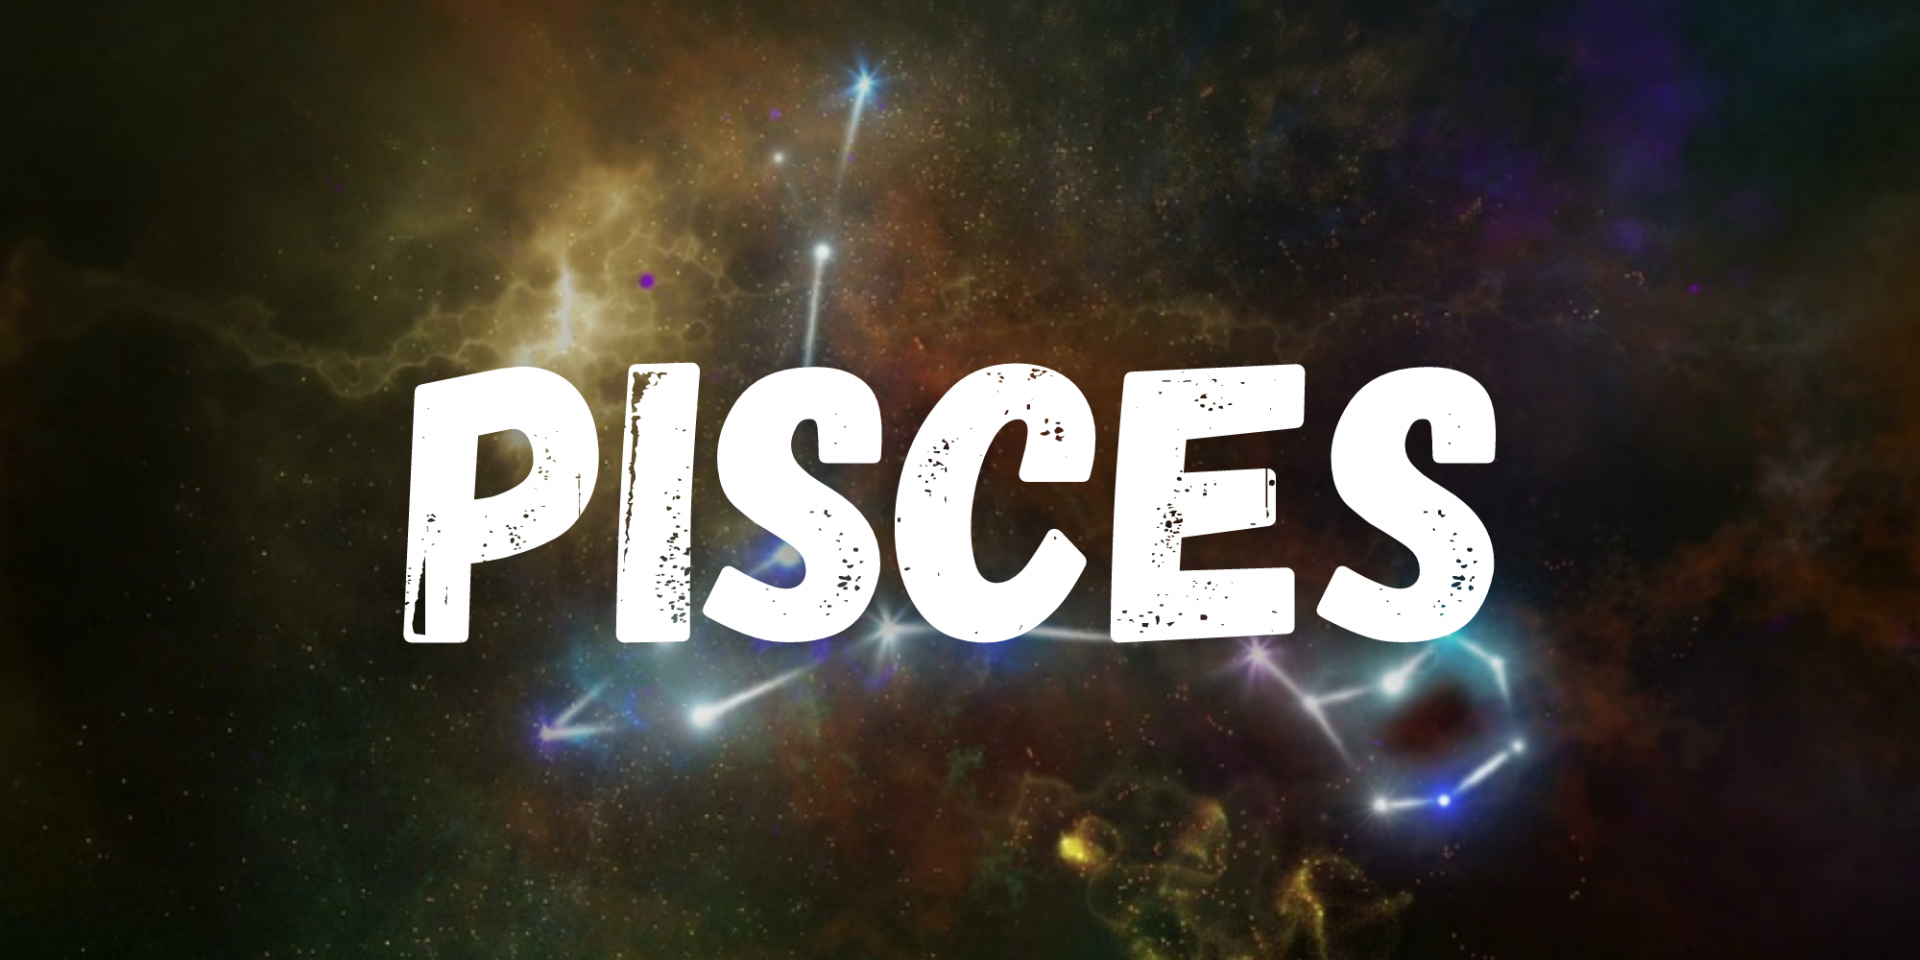 PISCES November 2021 Horoscope - Monthly Predictions for Love, Health, Career and Money